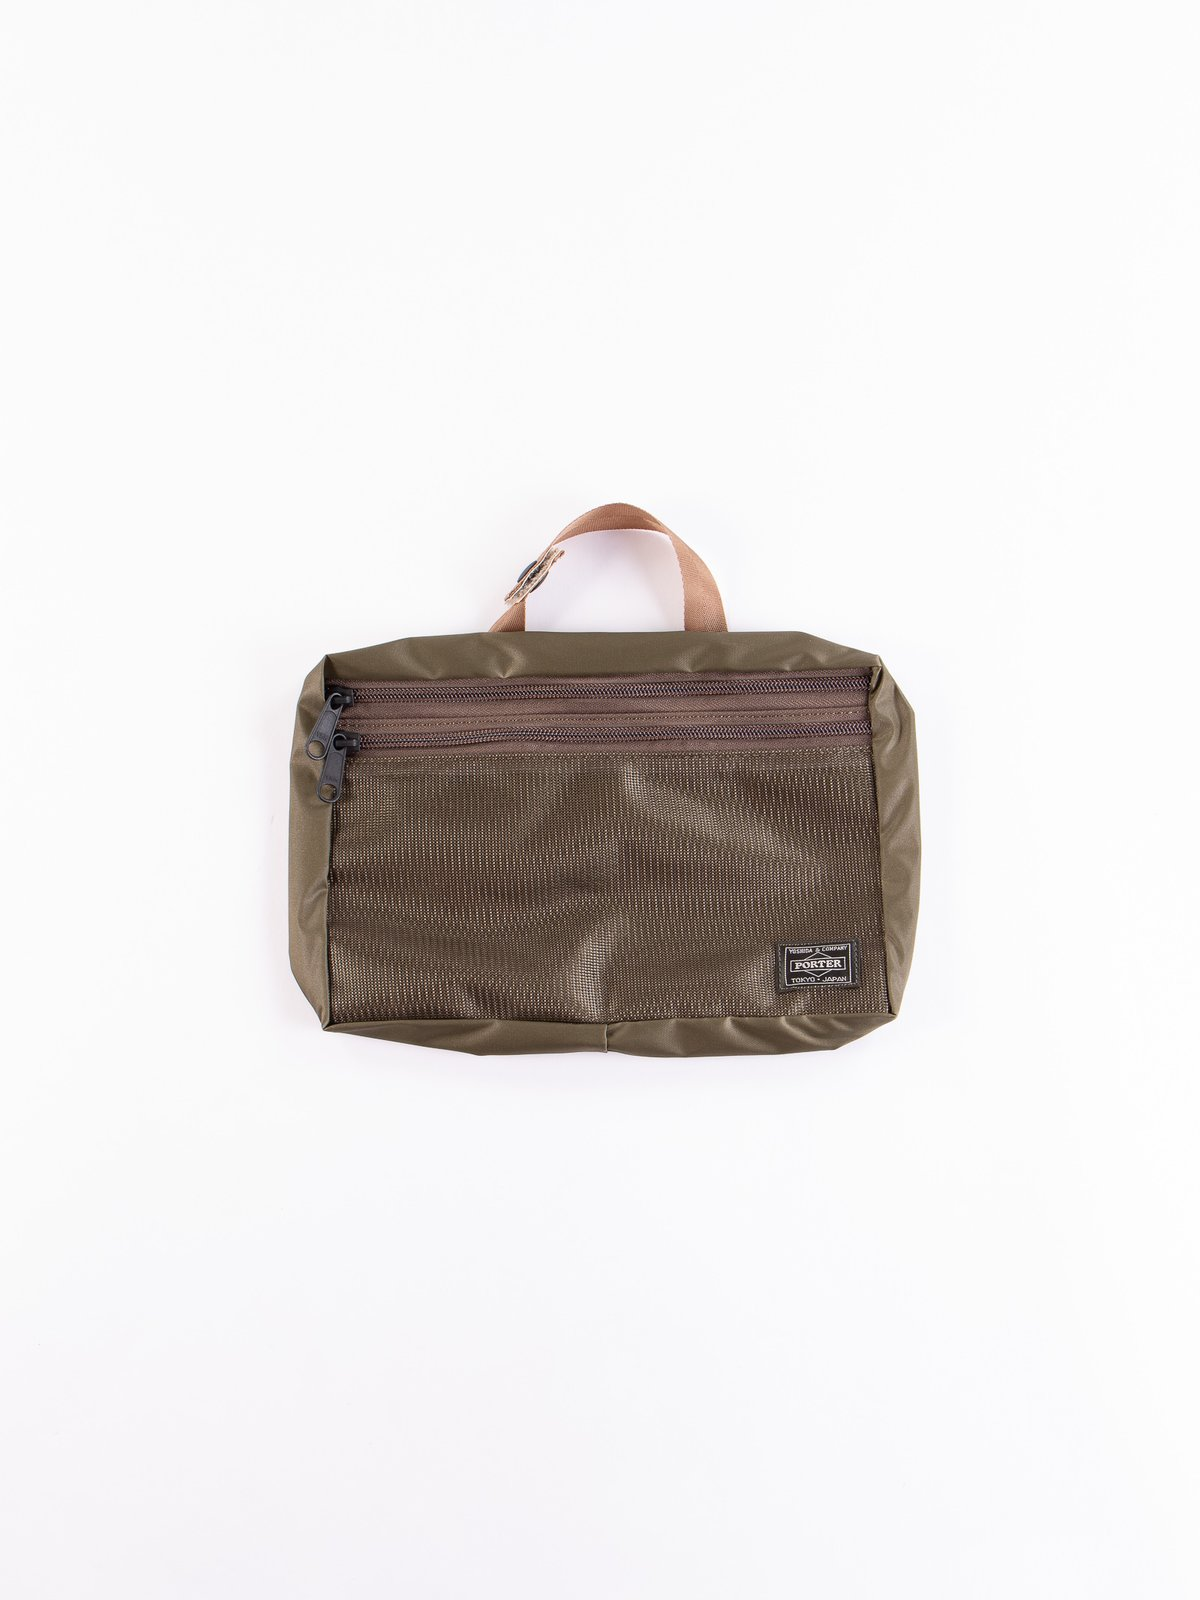 Olive Drab Snack Pack 09812 Pouch Large - Image 1